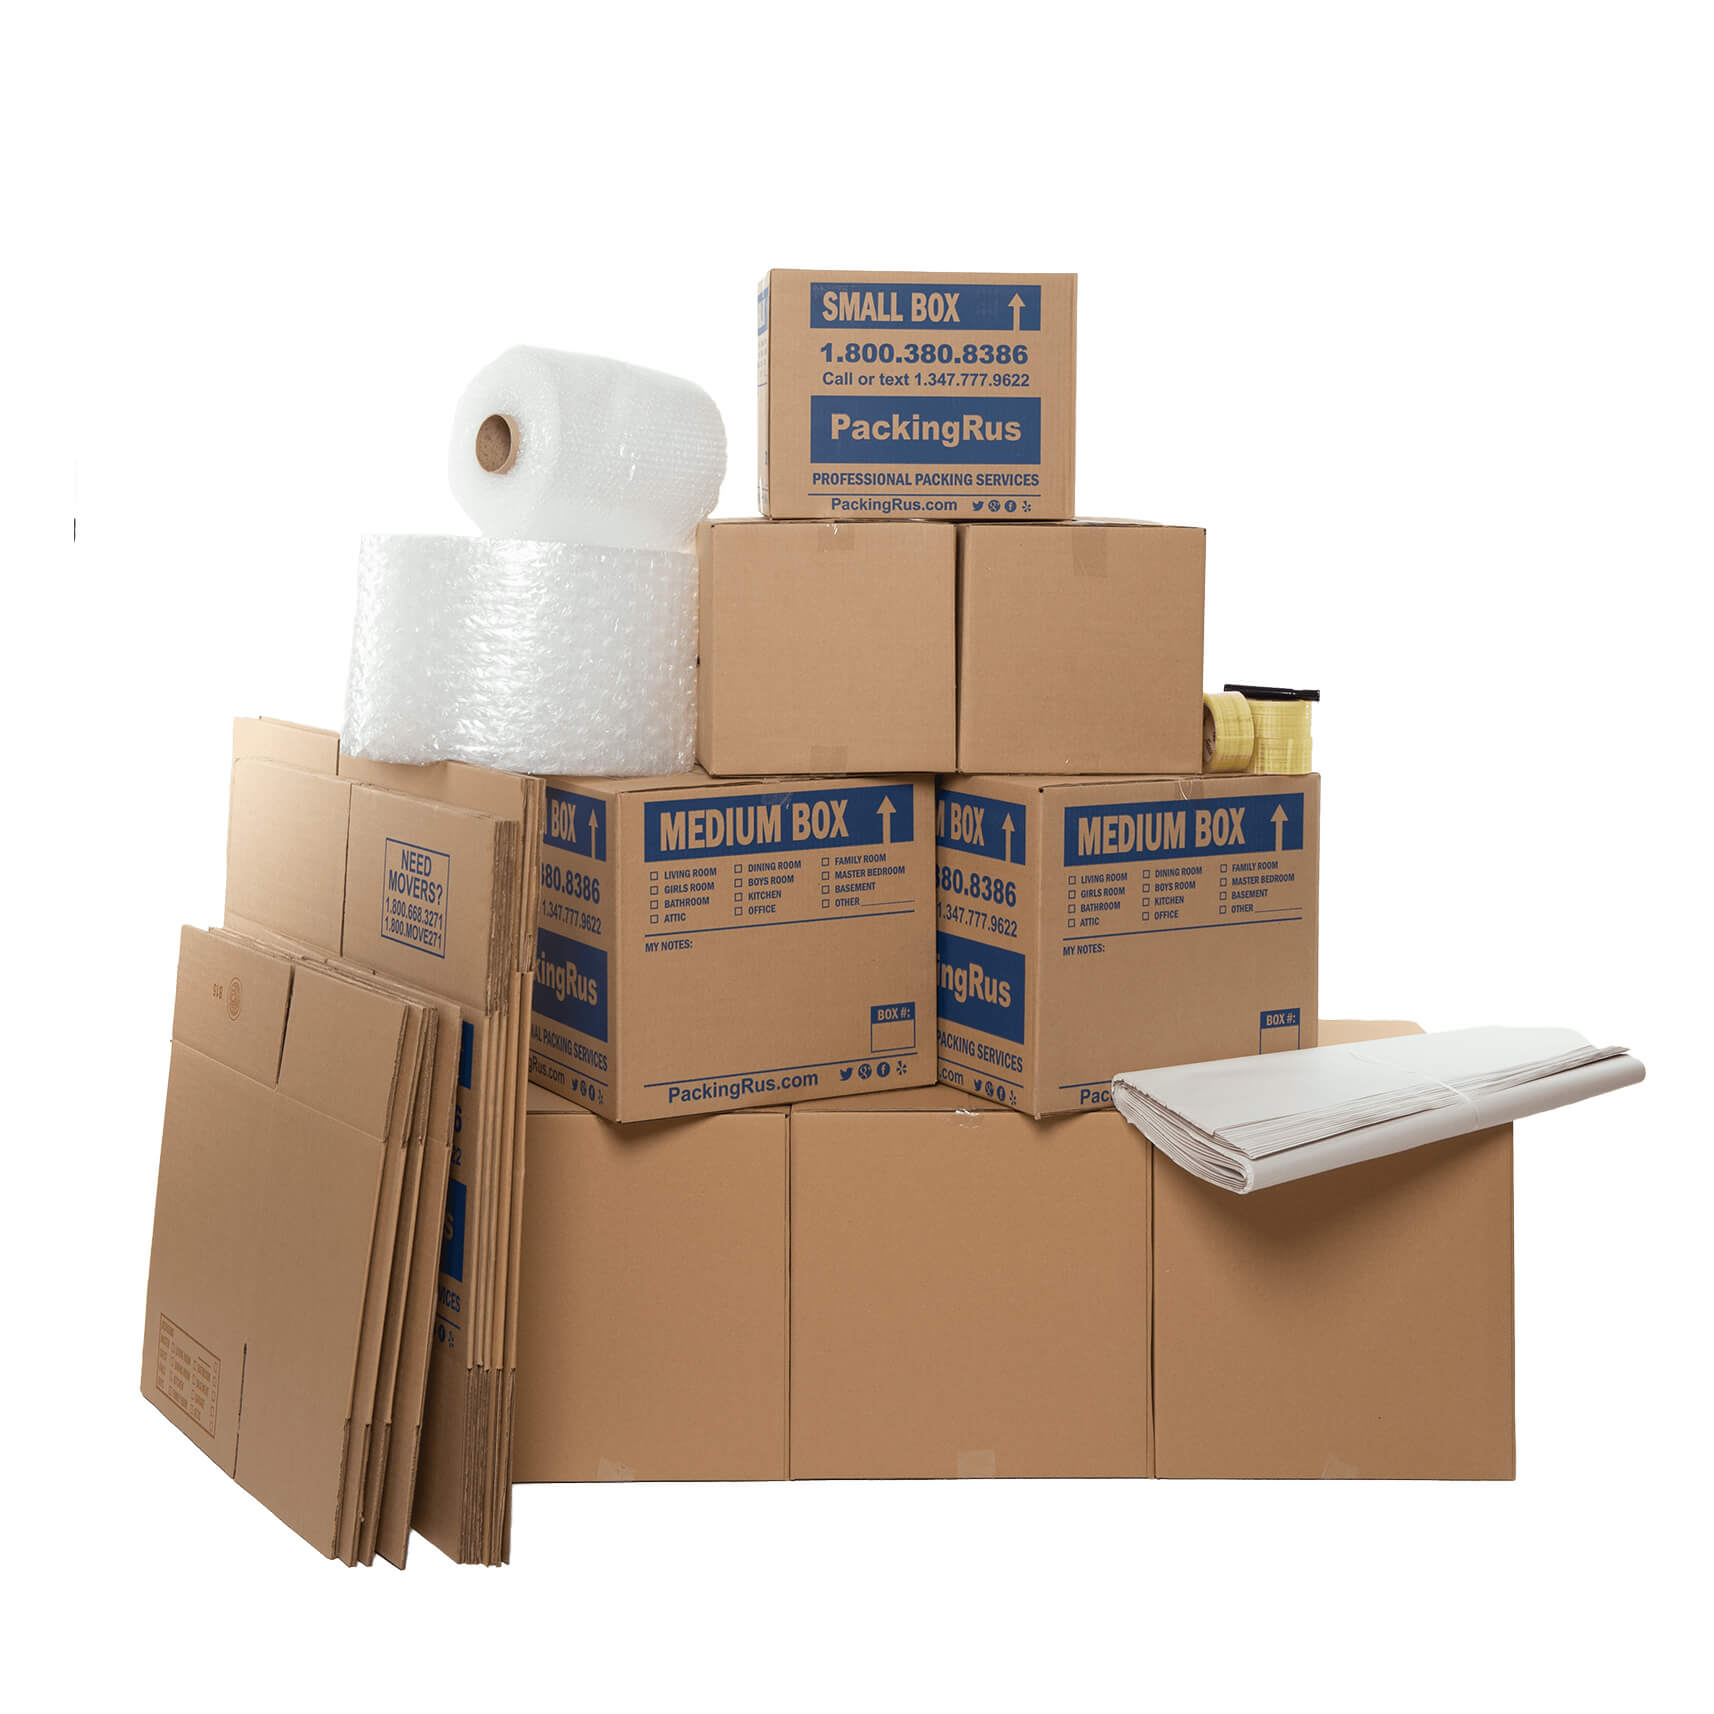 One Bedroom Moving Kit (Medium) | Kits | Packing R Us | NYC